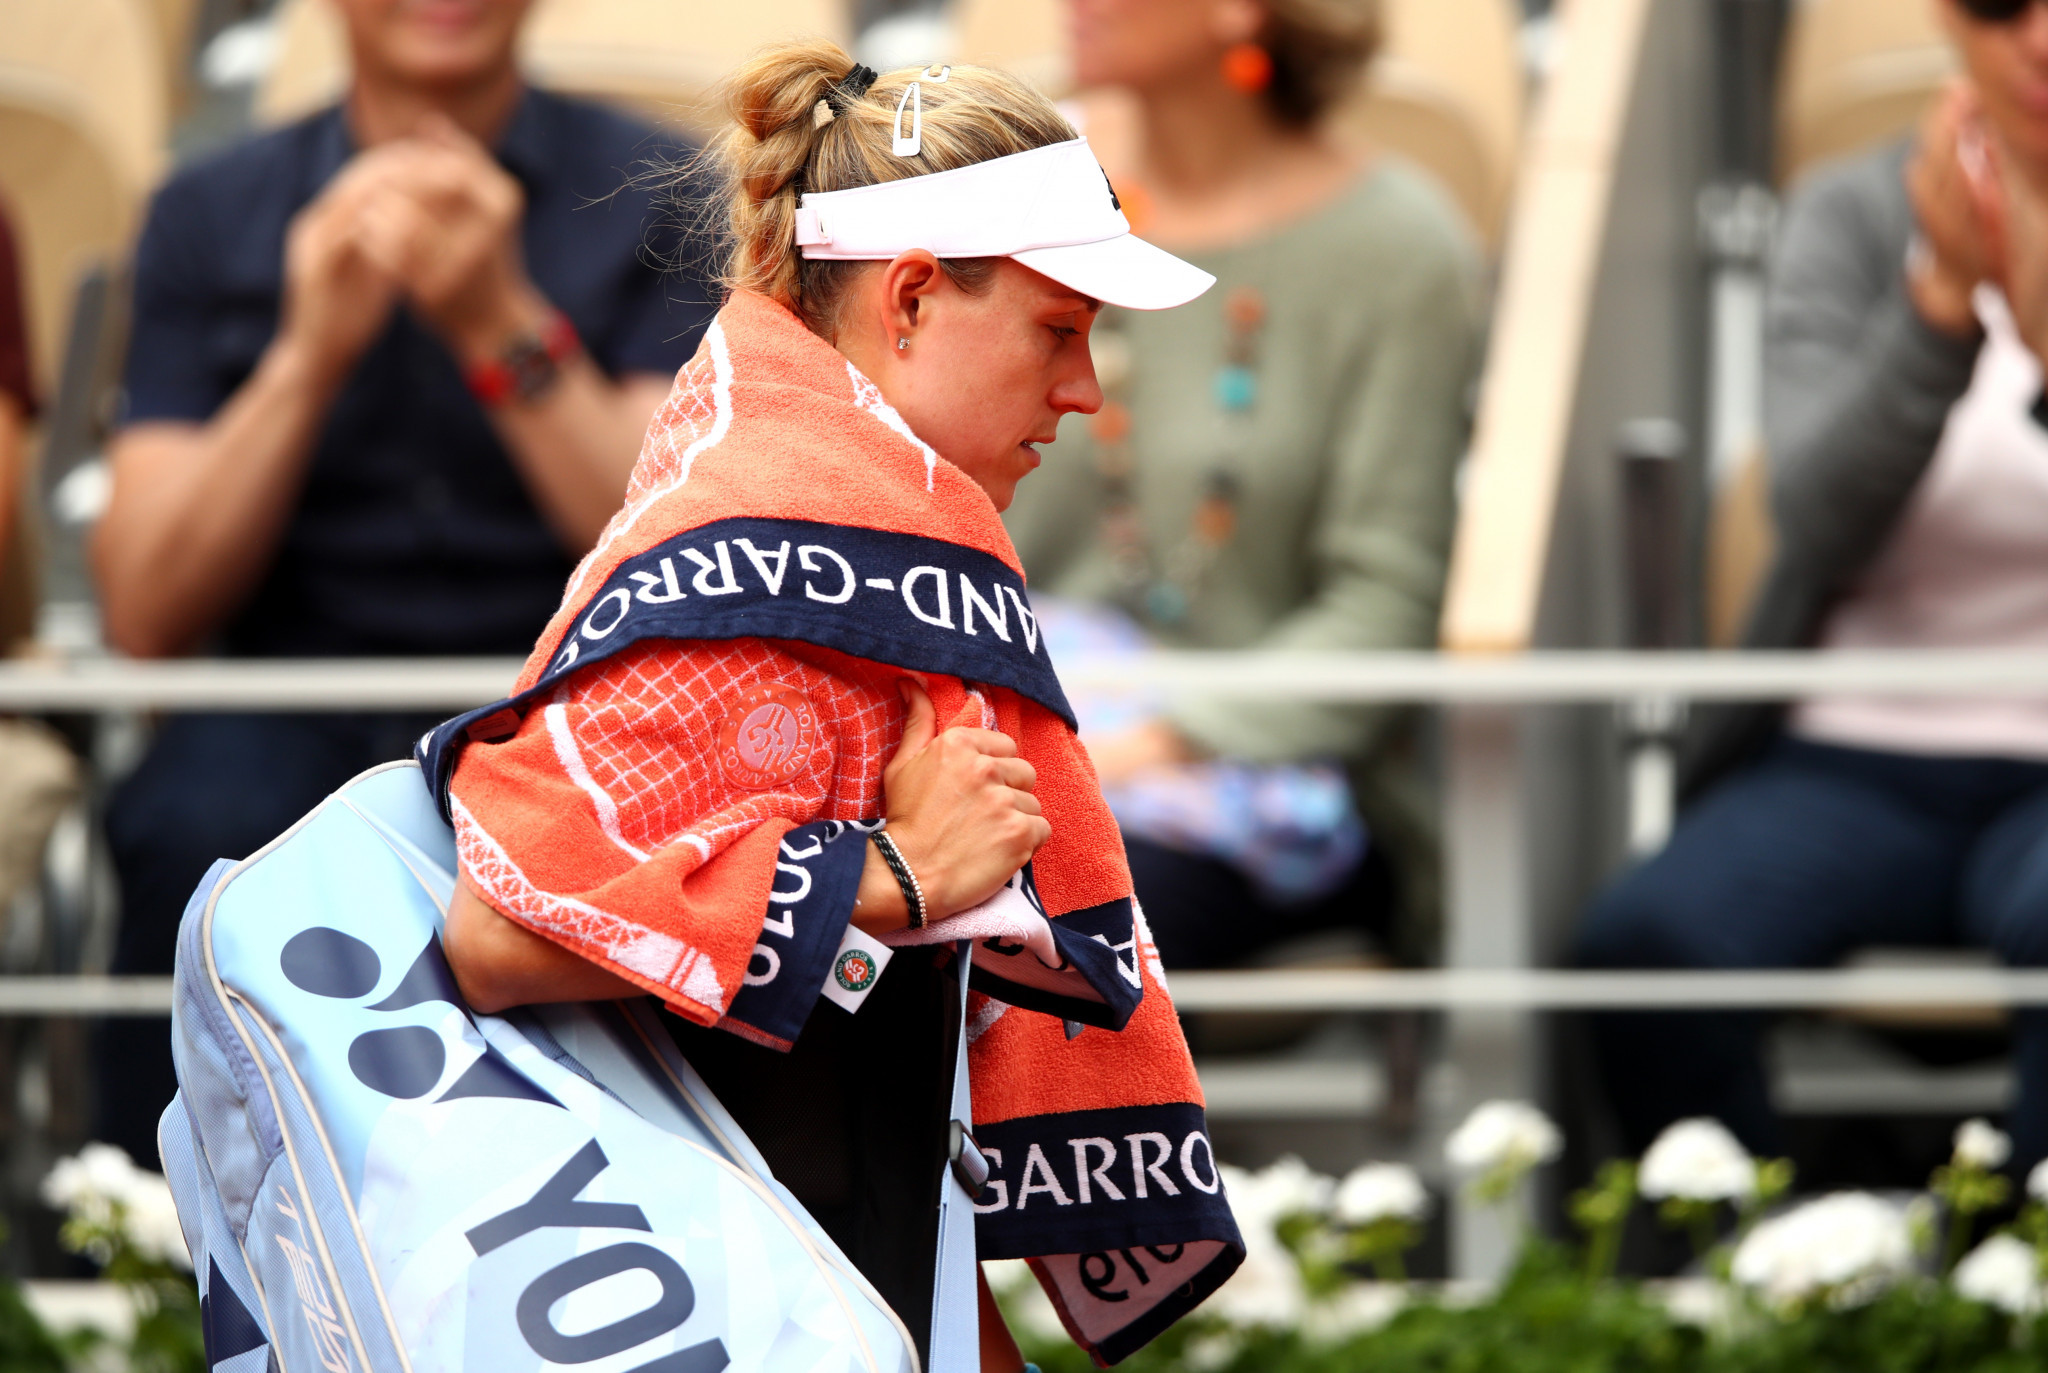 Potapova stuns Wimbledon champion Kerber in opening round of French Open